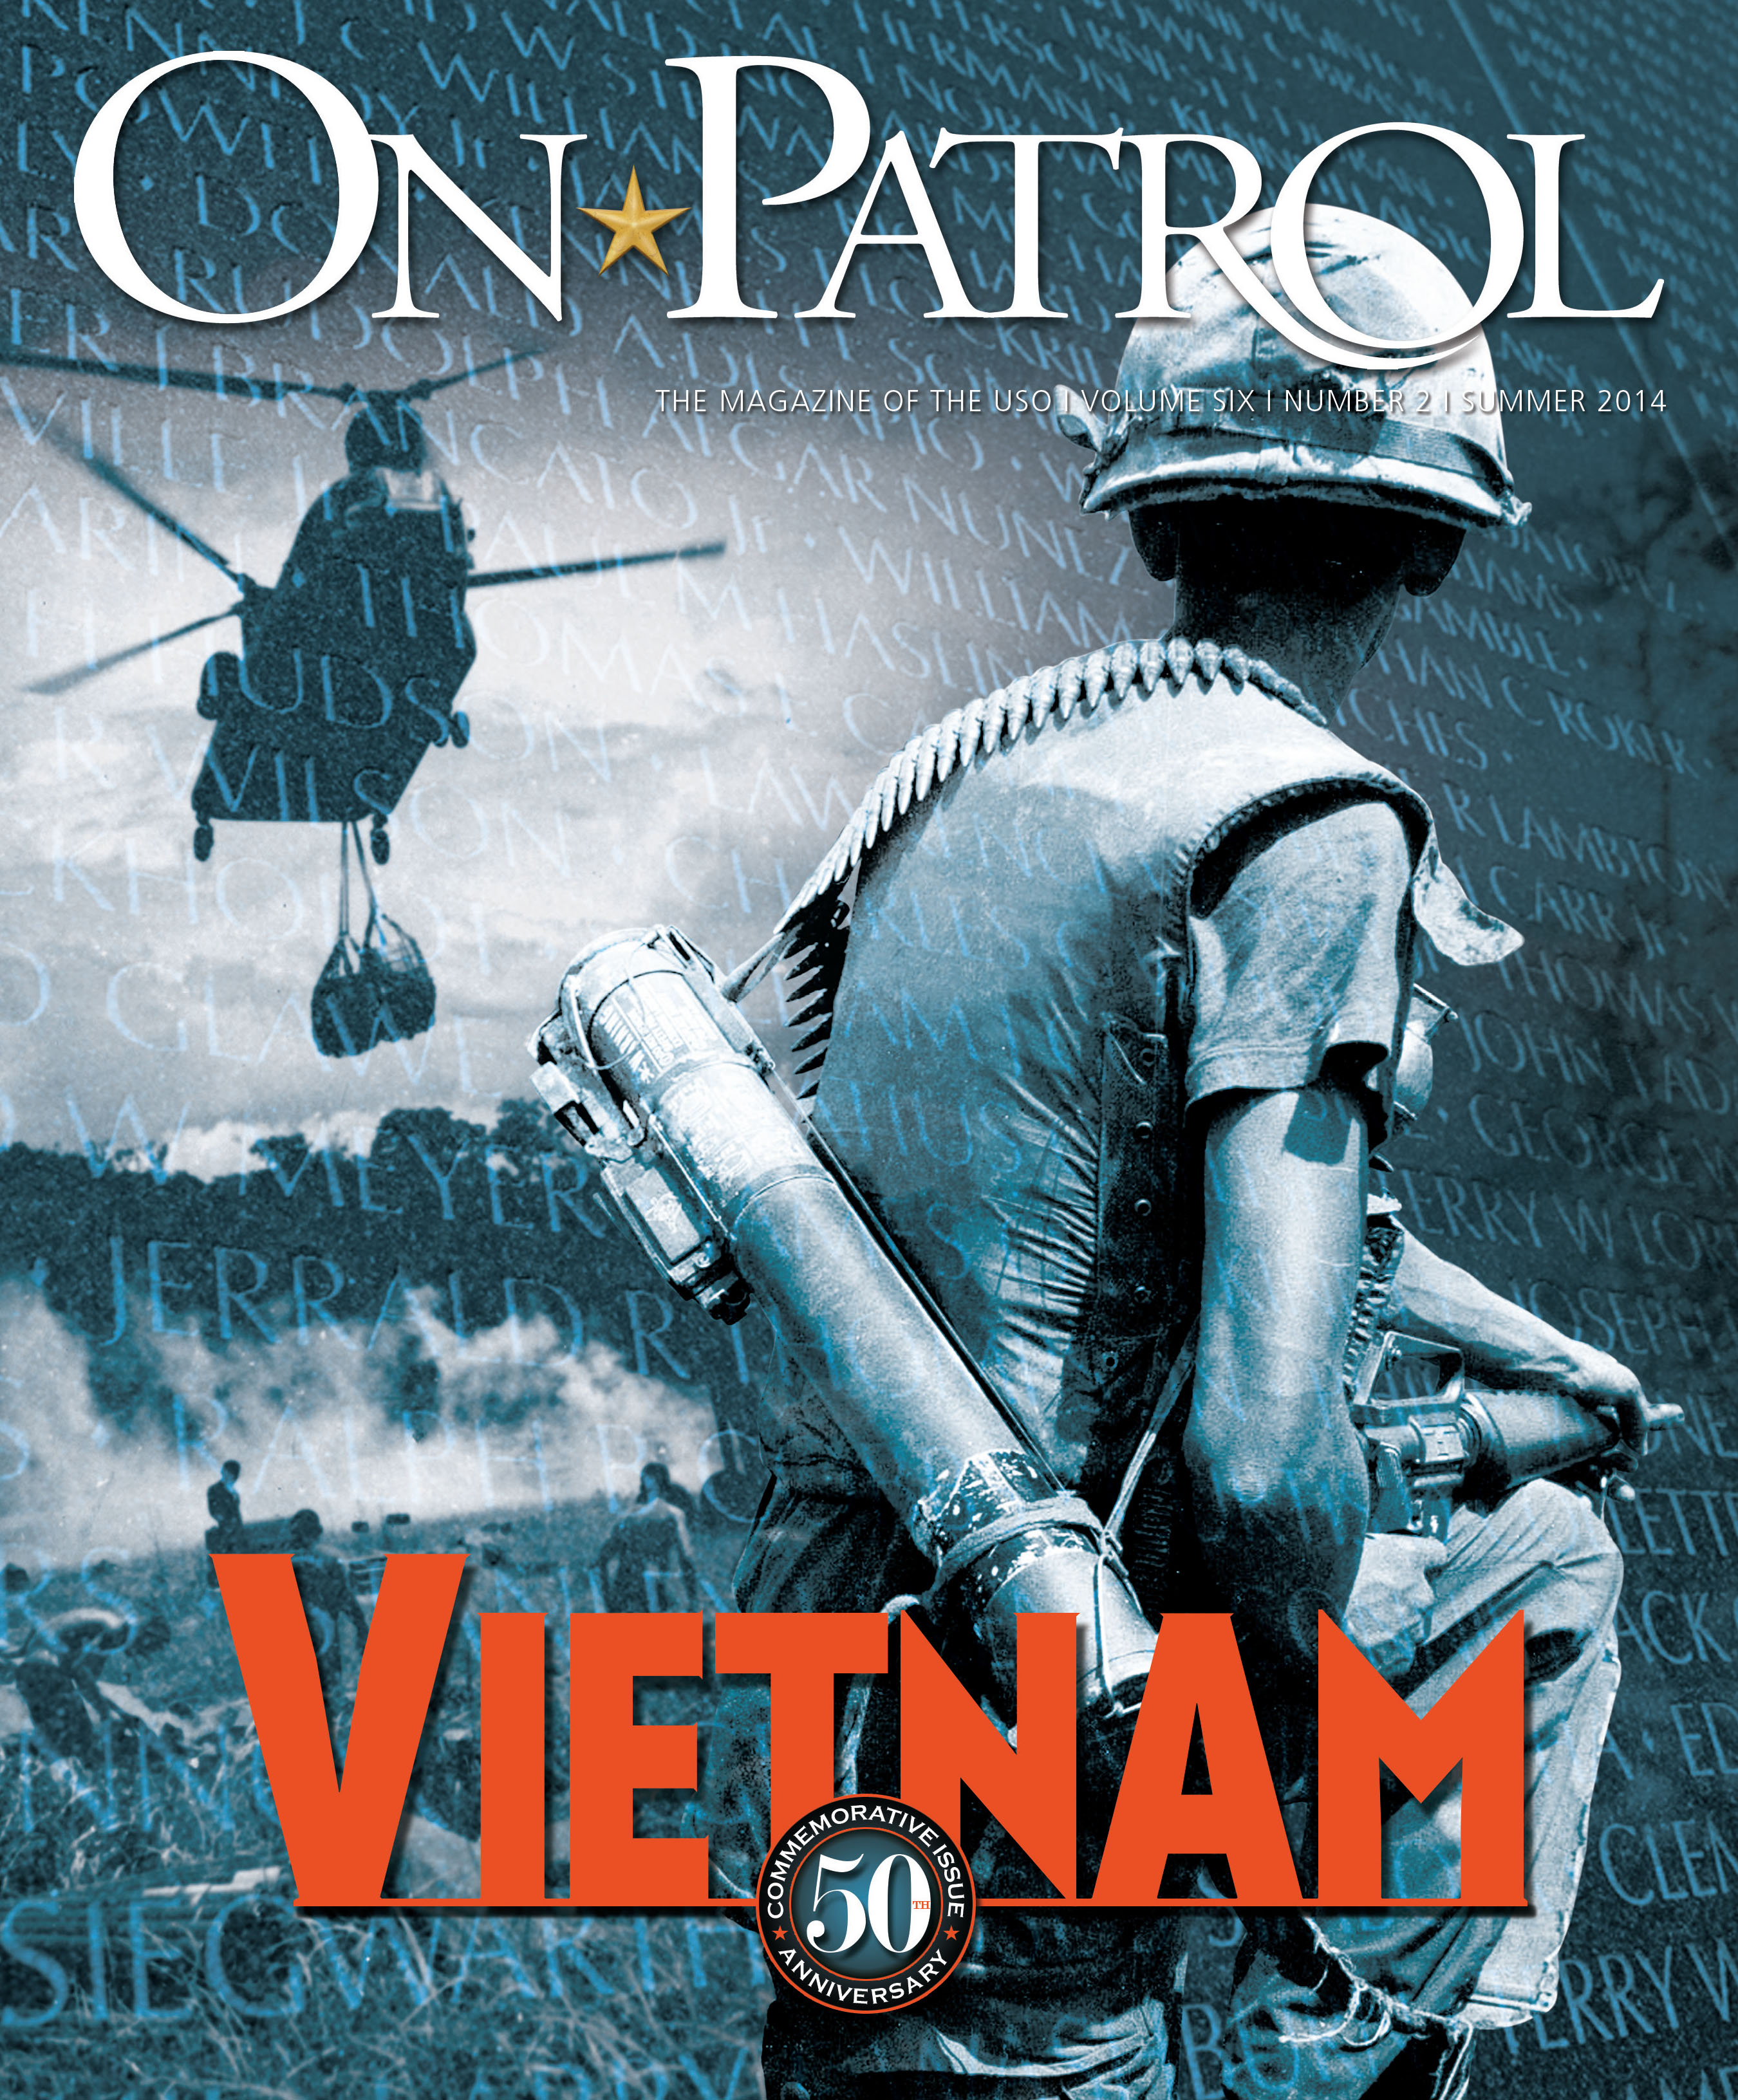 On Patrol Looks at Vietnam Through the Long Lens of History